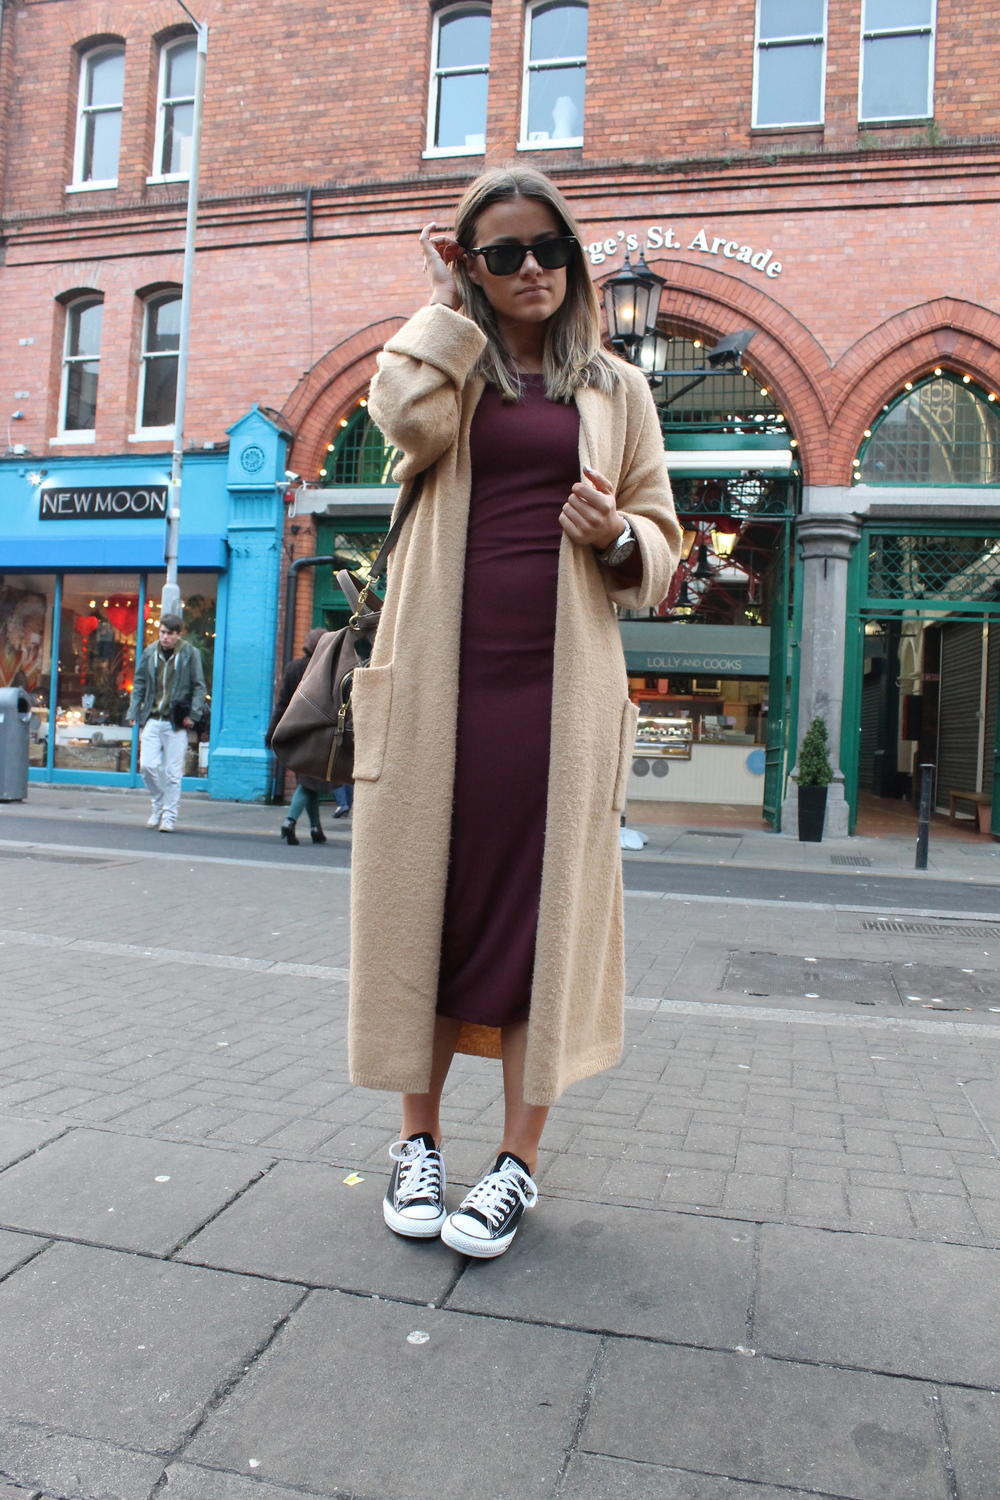 Cardigan: Paul Costello Dress: H&M Sneakers: Converse Bag: J. Crew Watch: Nixon Shades: Ray-ban